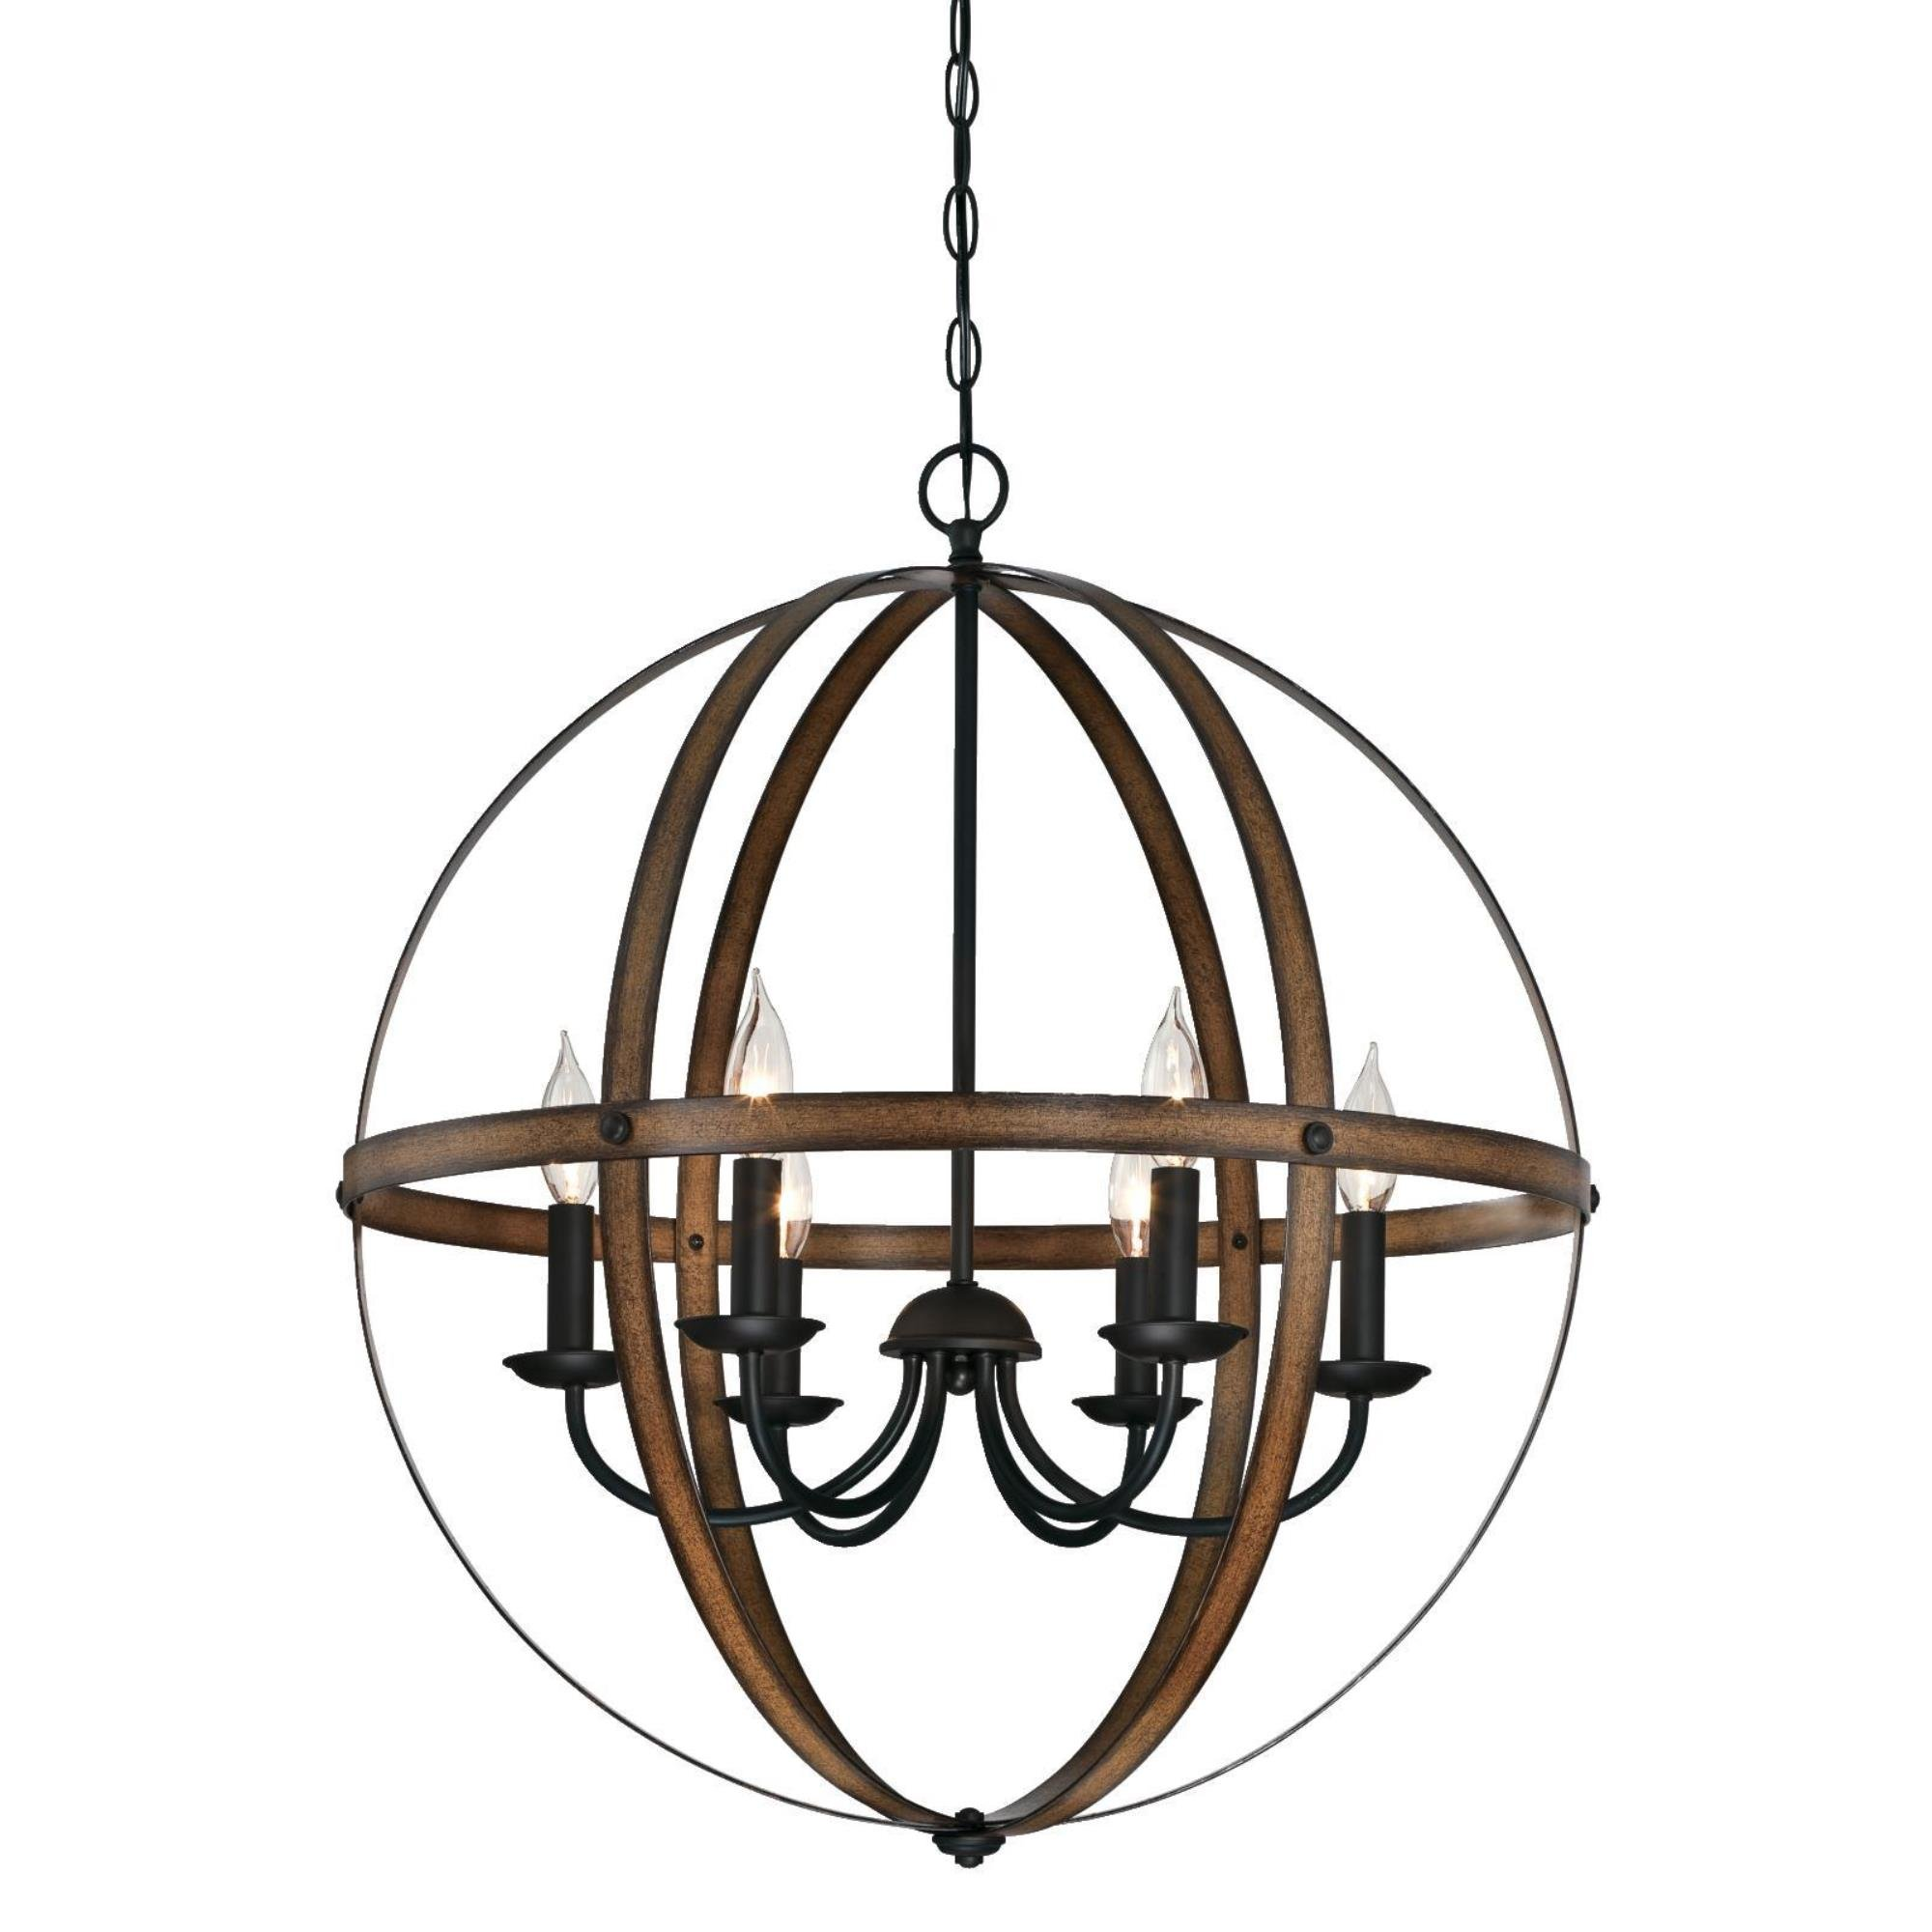 Westinghouse 6333600 Stella Mira Six-Light Indoor Chandelier Finish, Barnwood and Oil Rubbed Bronze by Westinghouse